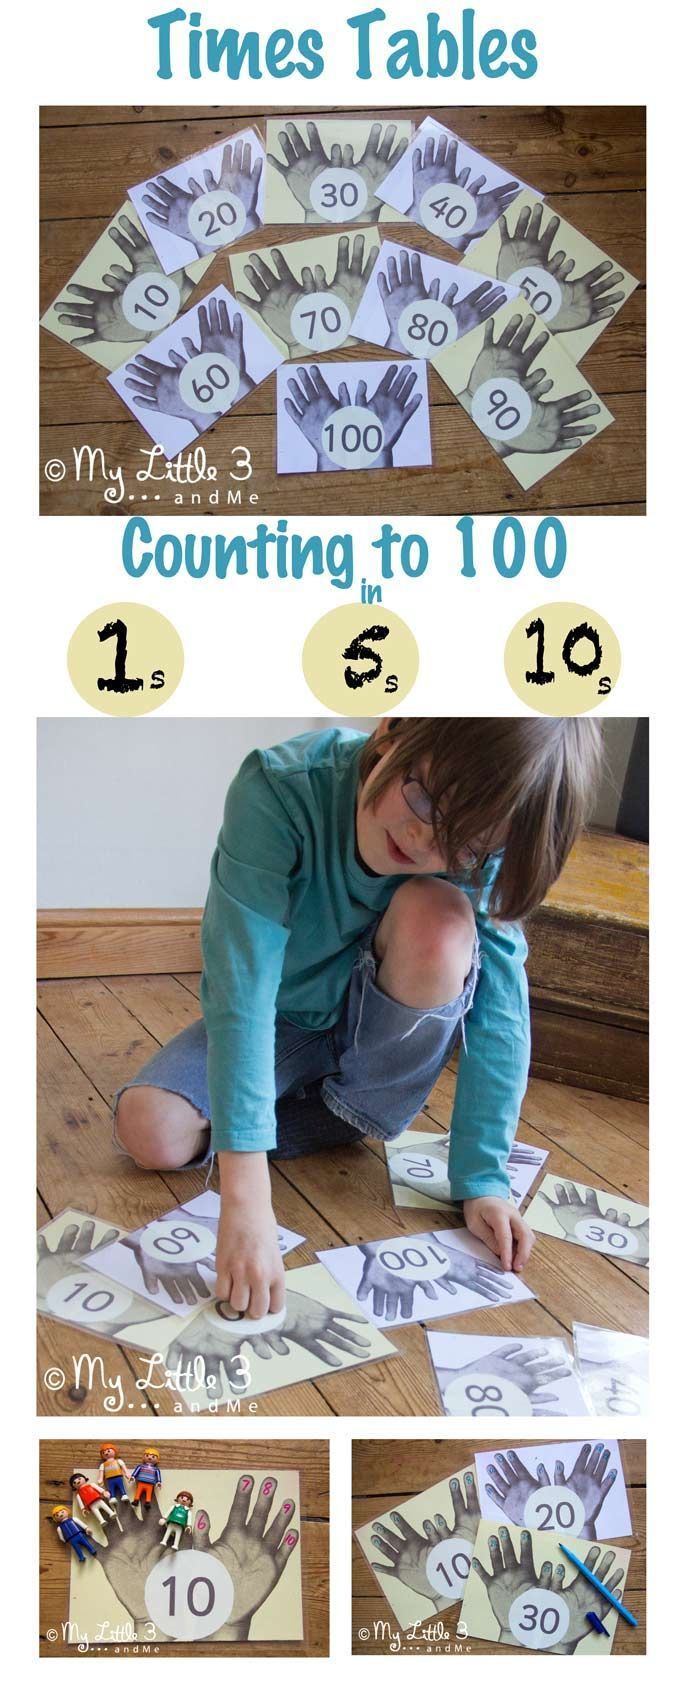 HANDPRINT MATHS A great resource for developing early math skills, one to one correspondence and 5 and 10 times tables/ skip counting. Hands on fun and meaningful learning.